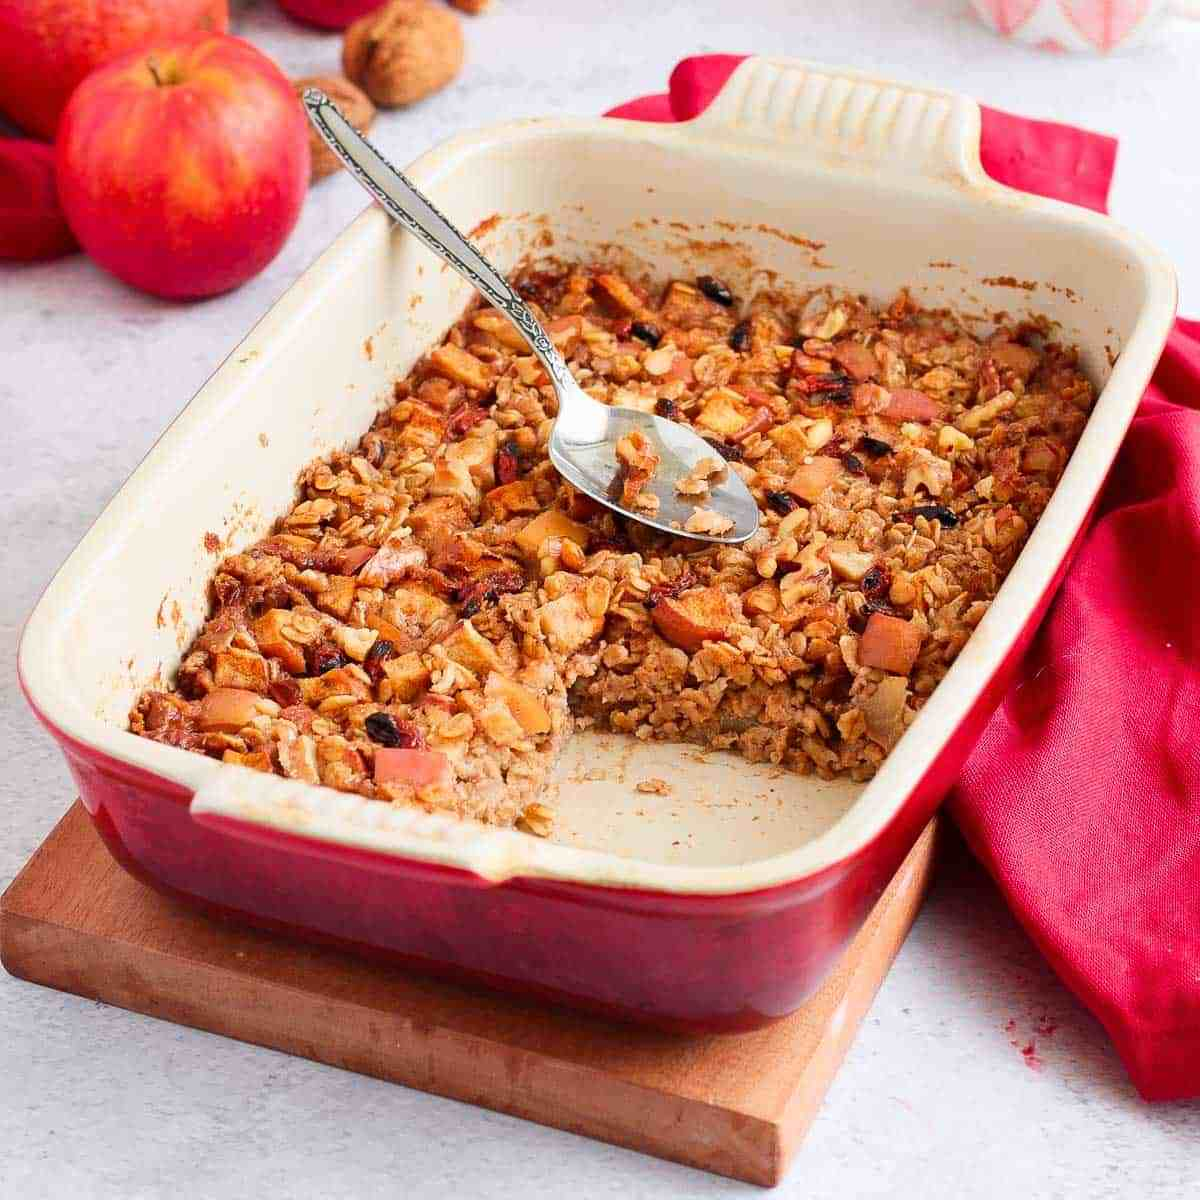 Apple cinnamon baked oatmeal in a baking dish